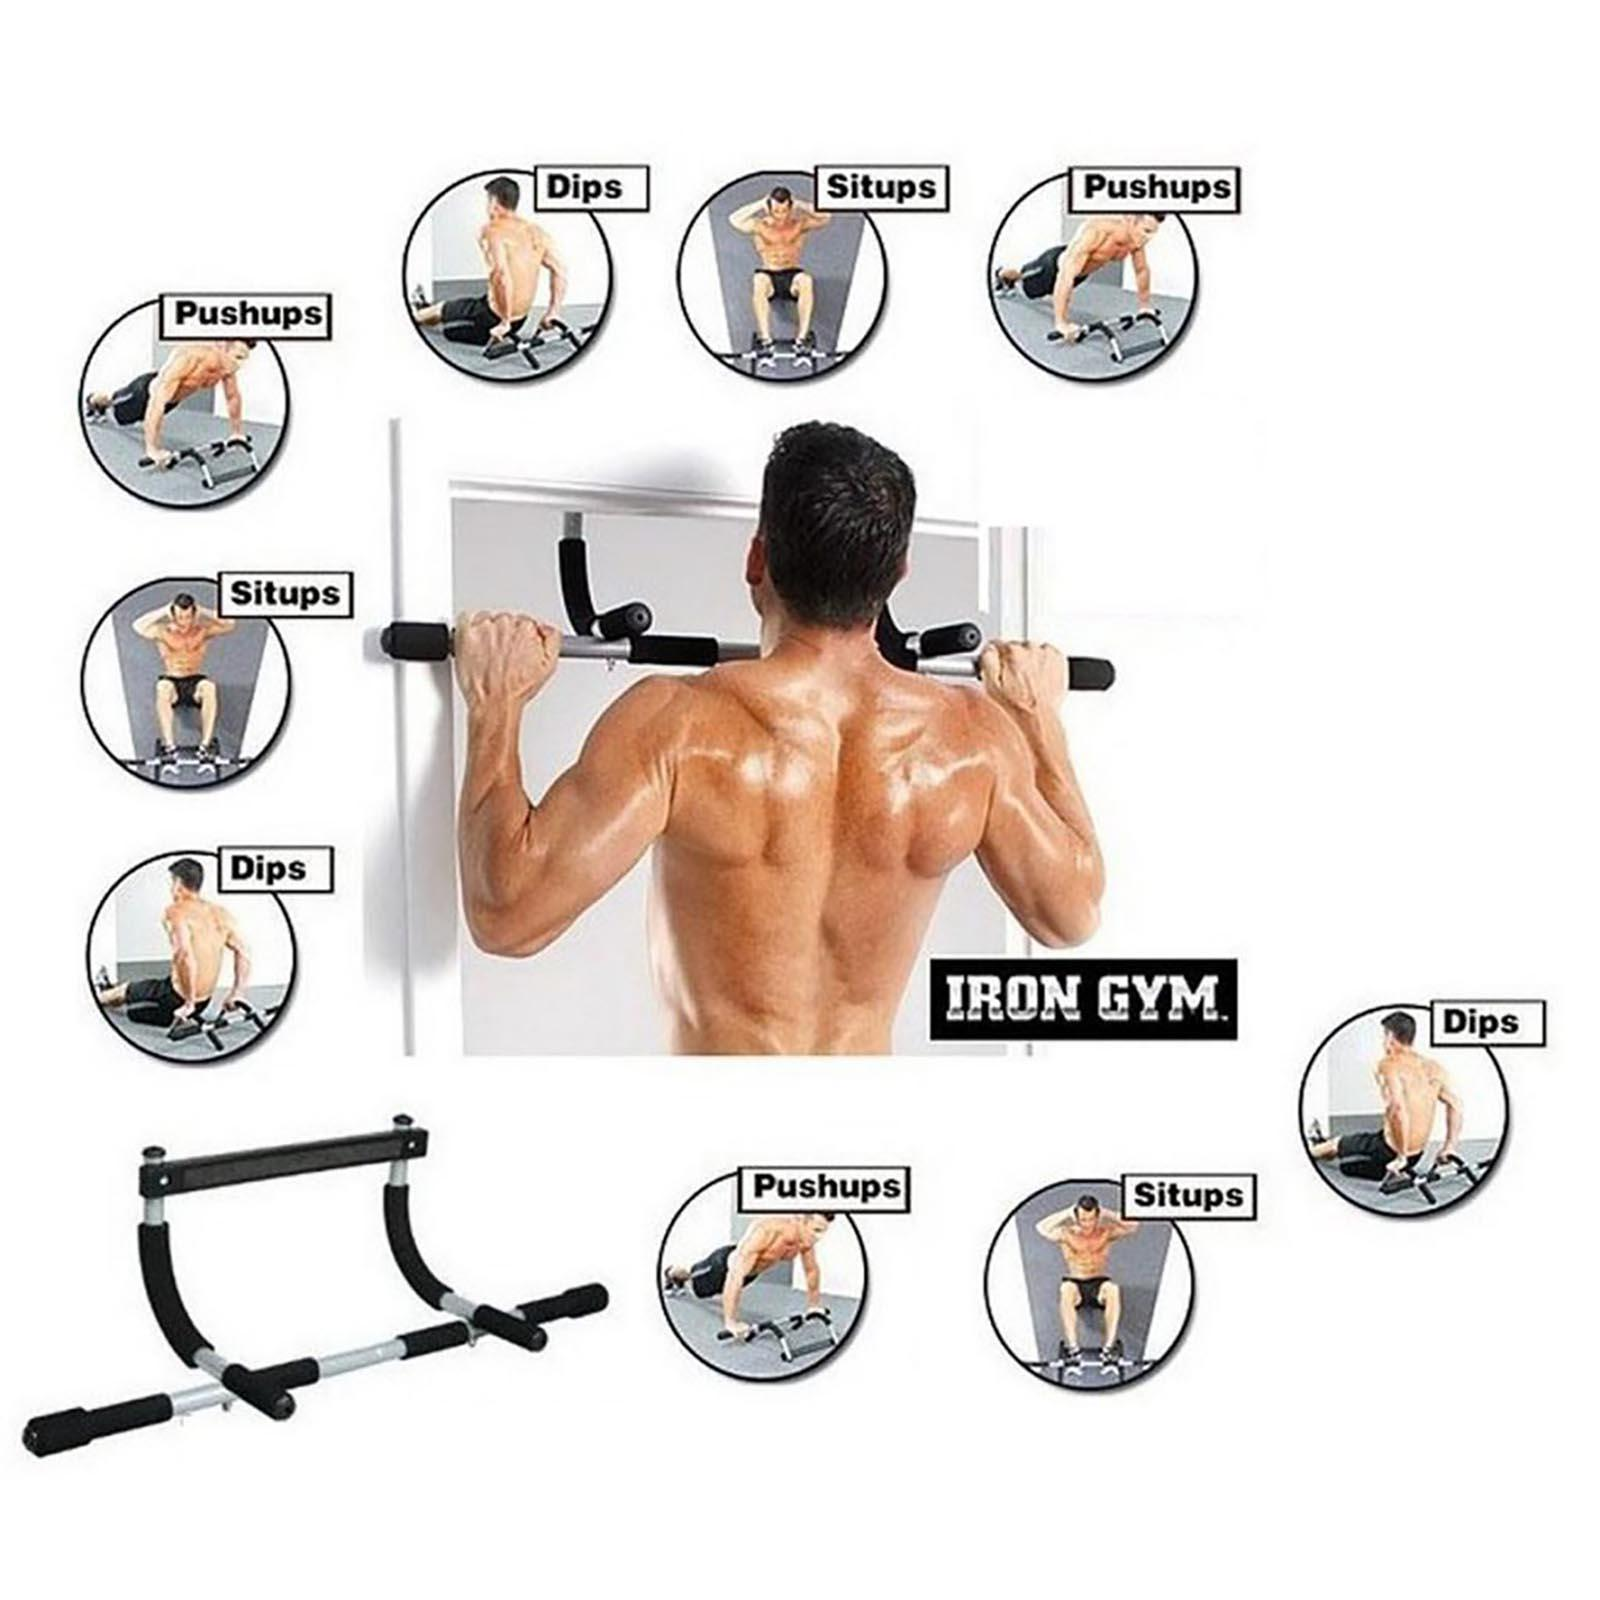 Iron Gym Total Upper Body Work Out Bar (Black)